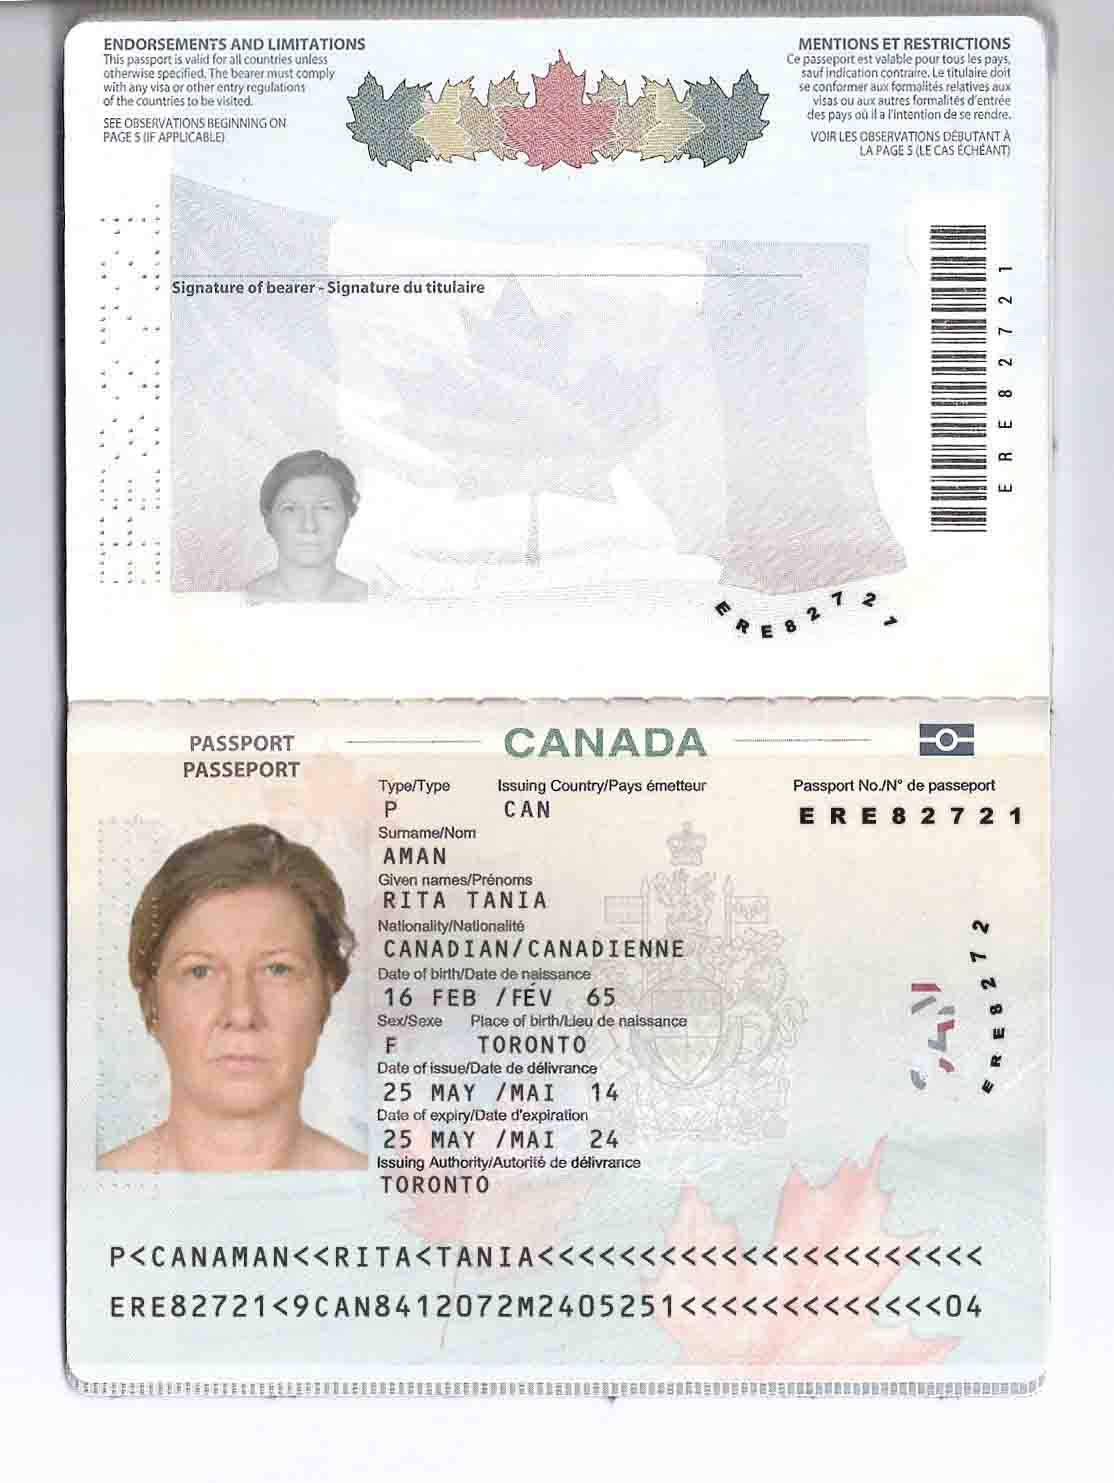 Pin By B Tin On Visa Passport Online Canadian Passport Visa Online